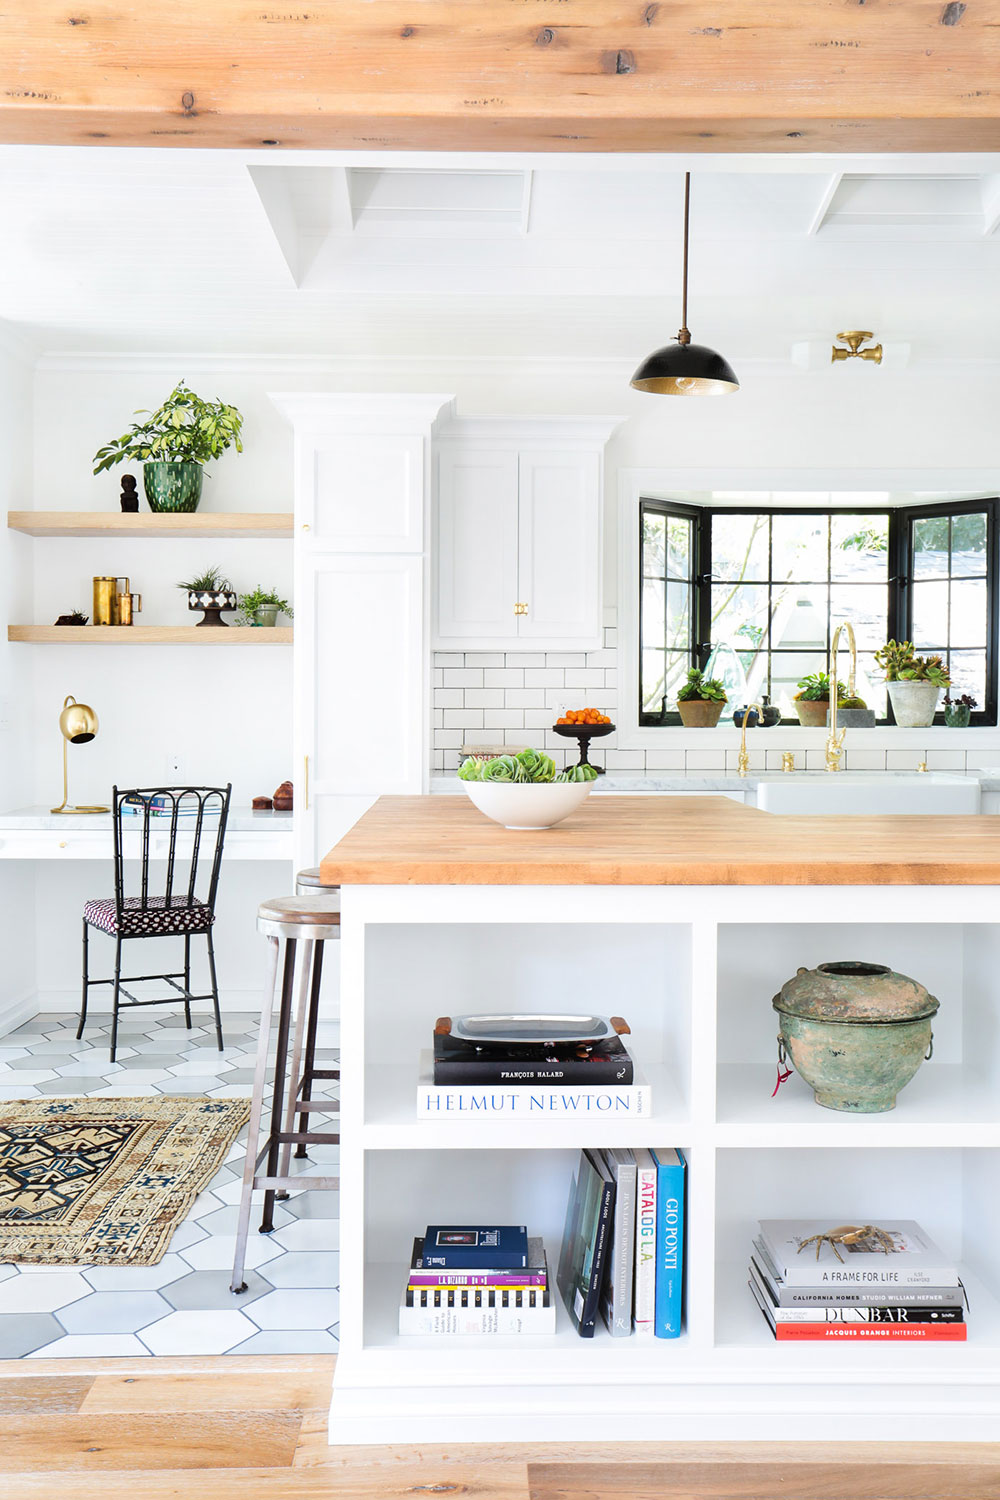 40 Kitchens with Polished Wood Surfaces - Polished wood surfaces can add plenty of character to a kitchen design. Discover how Dering Hall talents tapped into their creativity, opting to use this beloved natural material for kitchen cabinets and islands of all styles.